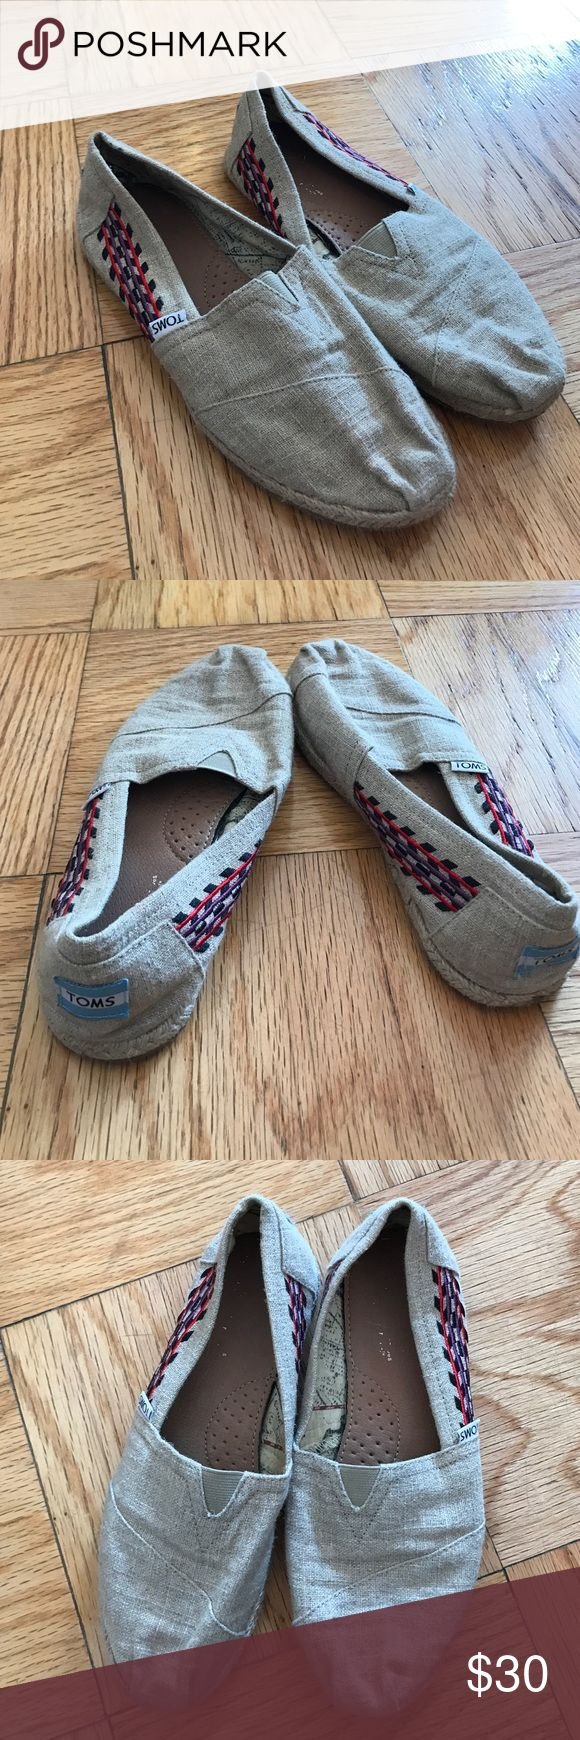 Burlap Toms with embroidered side detailing Burlap Toms with a beautiful & fun embroidered side detailing. Lightly worn. TOMS Shoes